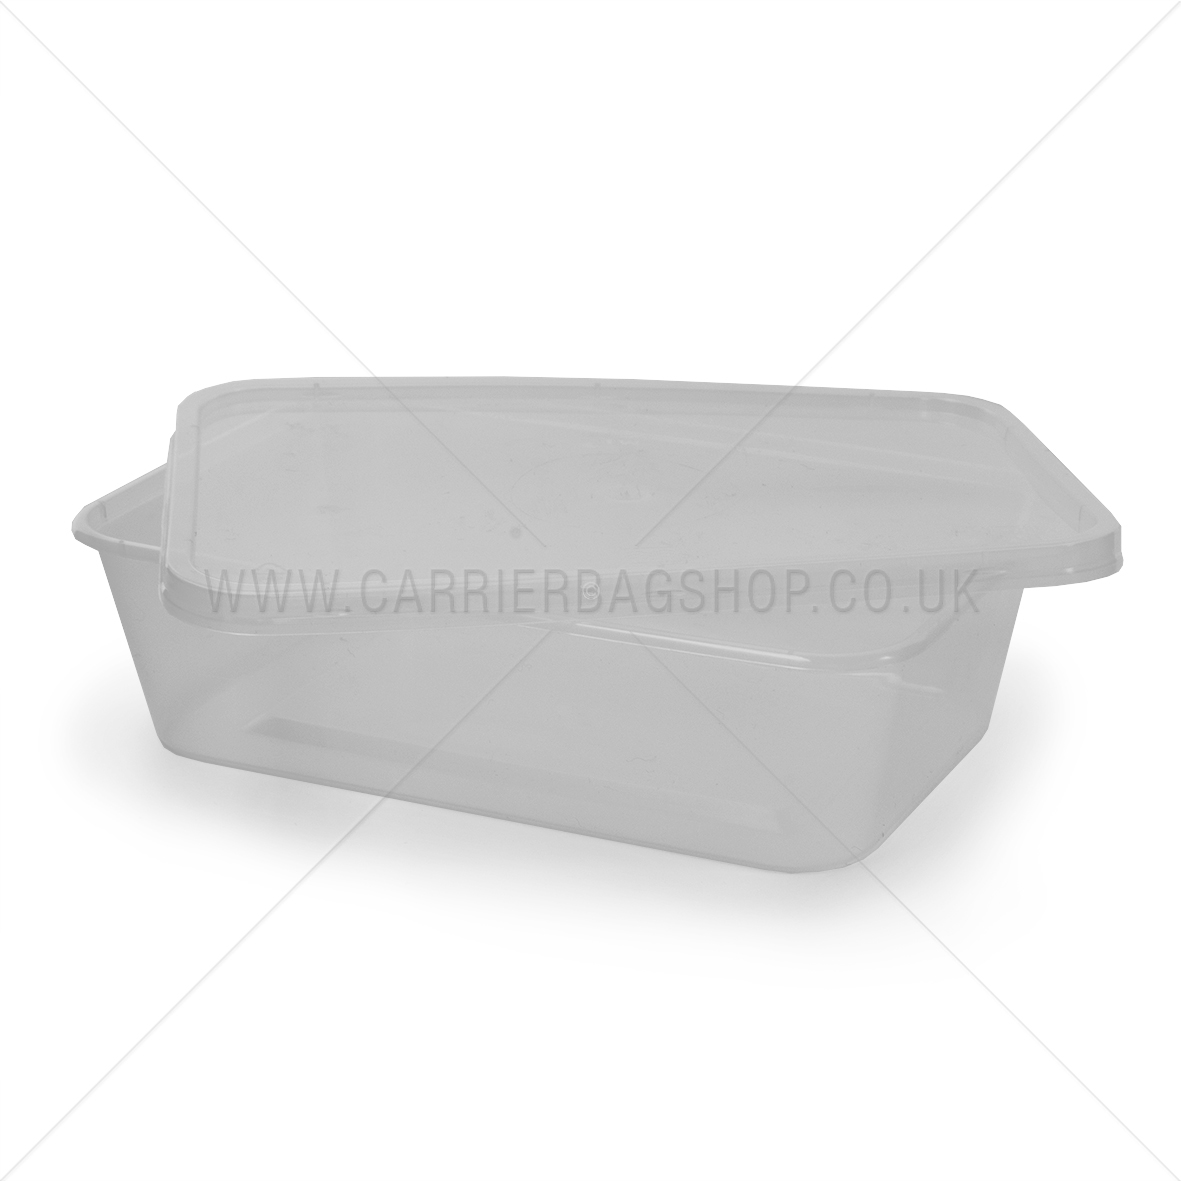 Plastic Containers With Lids Clear Microwavable Plastic Containers With Lids Carrier